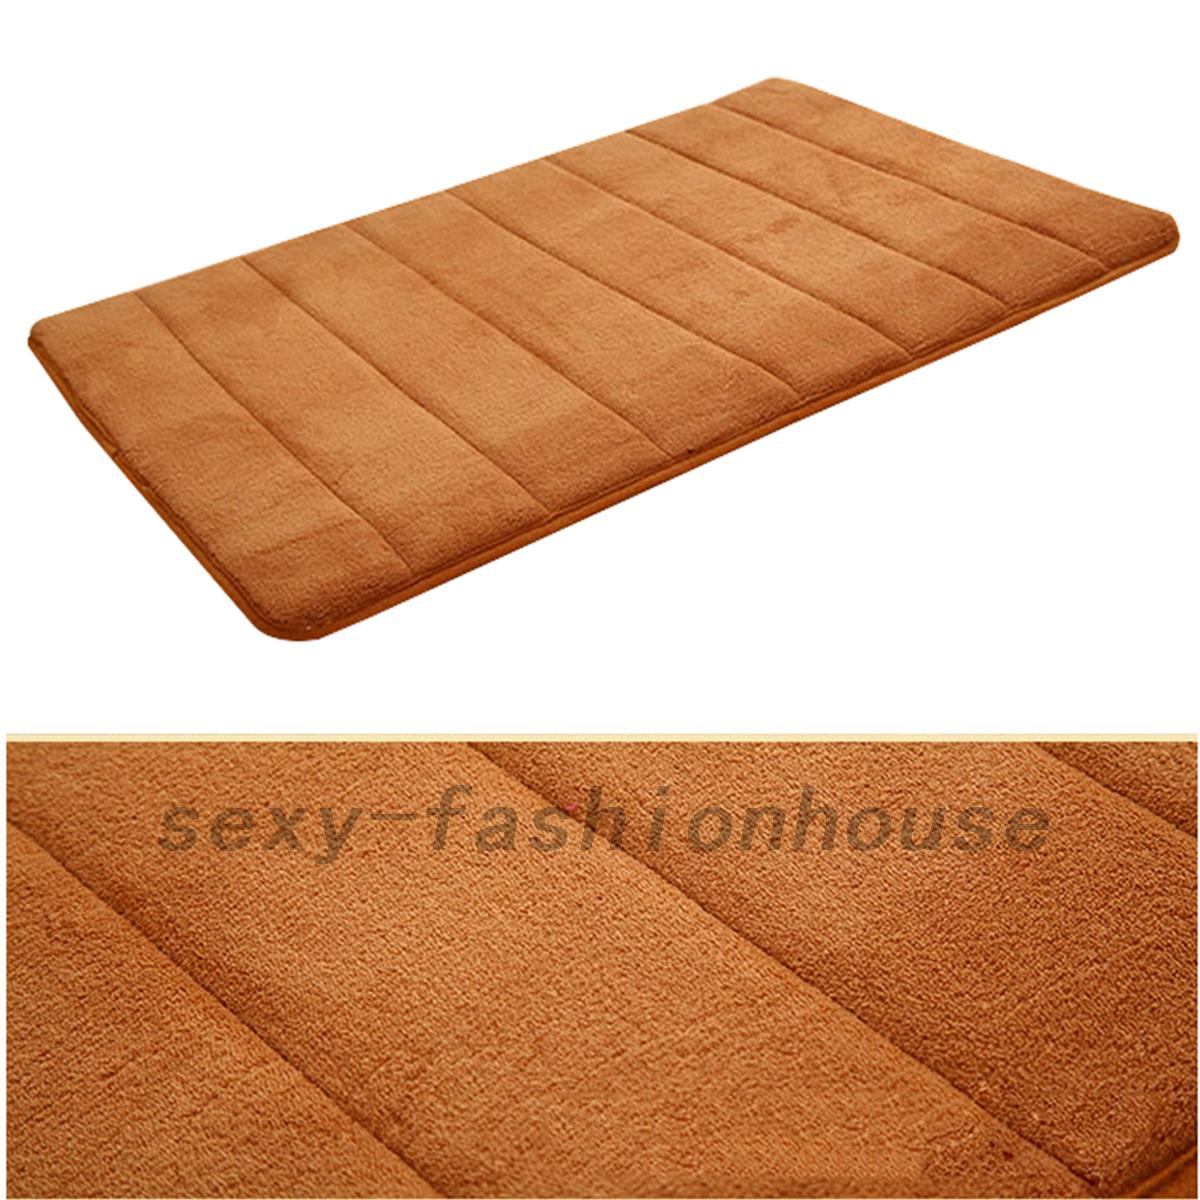 Non Slip Bathroom Mats Memory Foam Non Slip Floor Mats Bath Shower Carpet